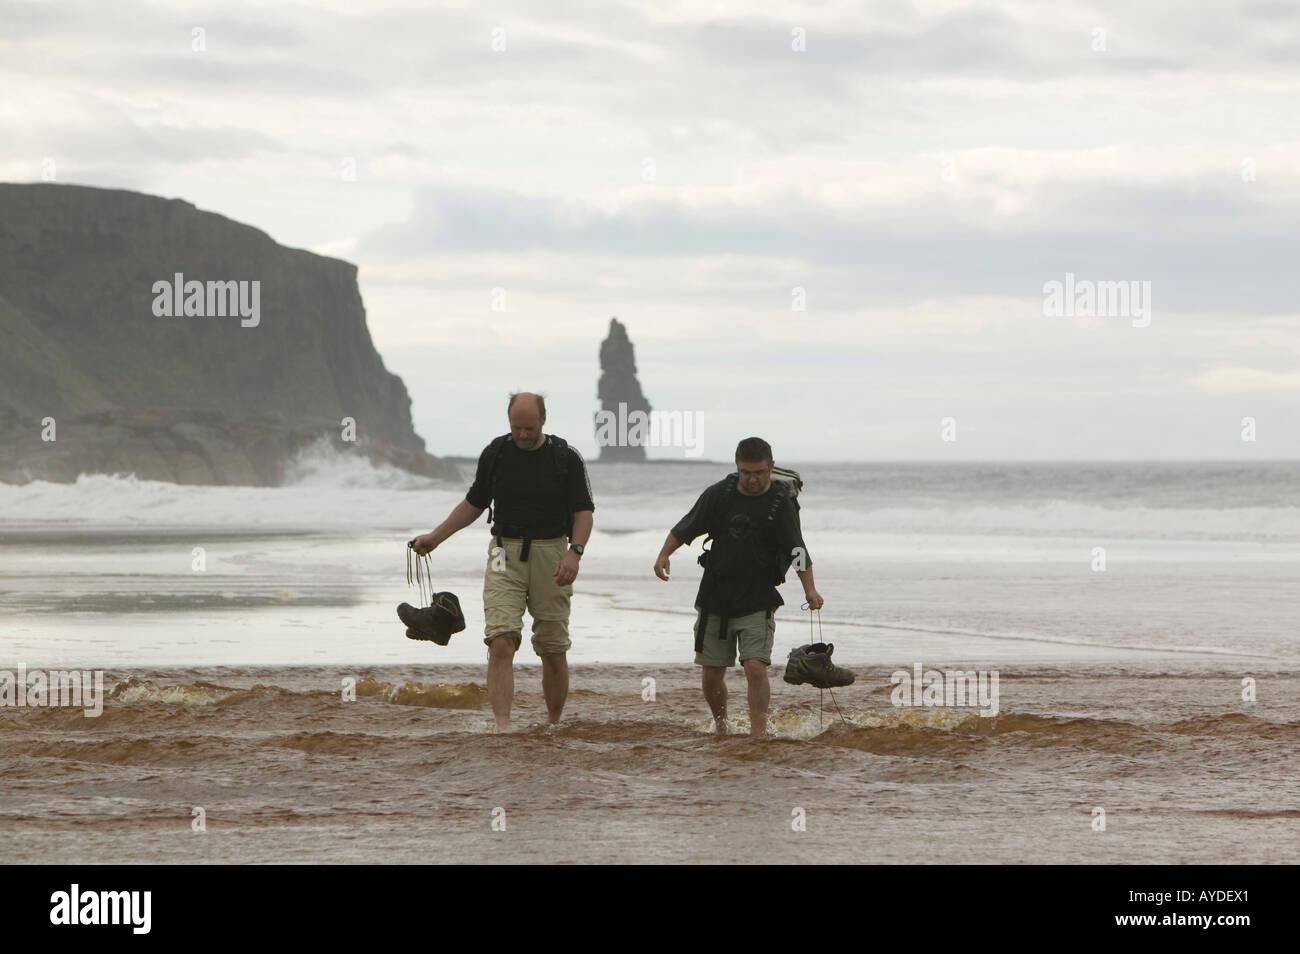 Hikers crossing the outflow of Sandwood Loch into the sea across Sandwood Beach, Sutherland, Scotland, UK - Stock Image